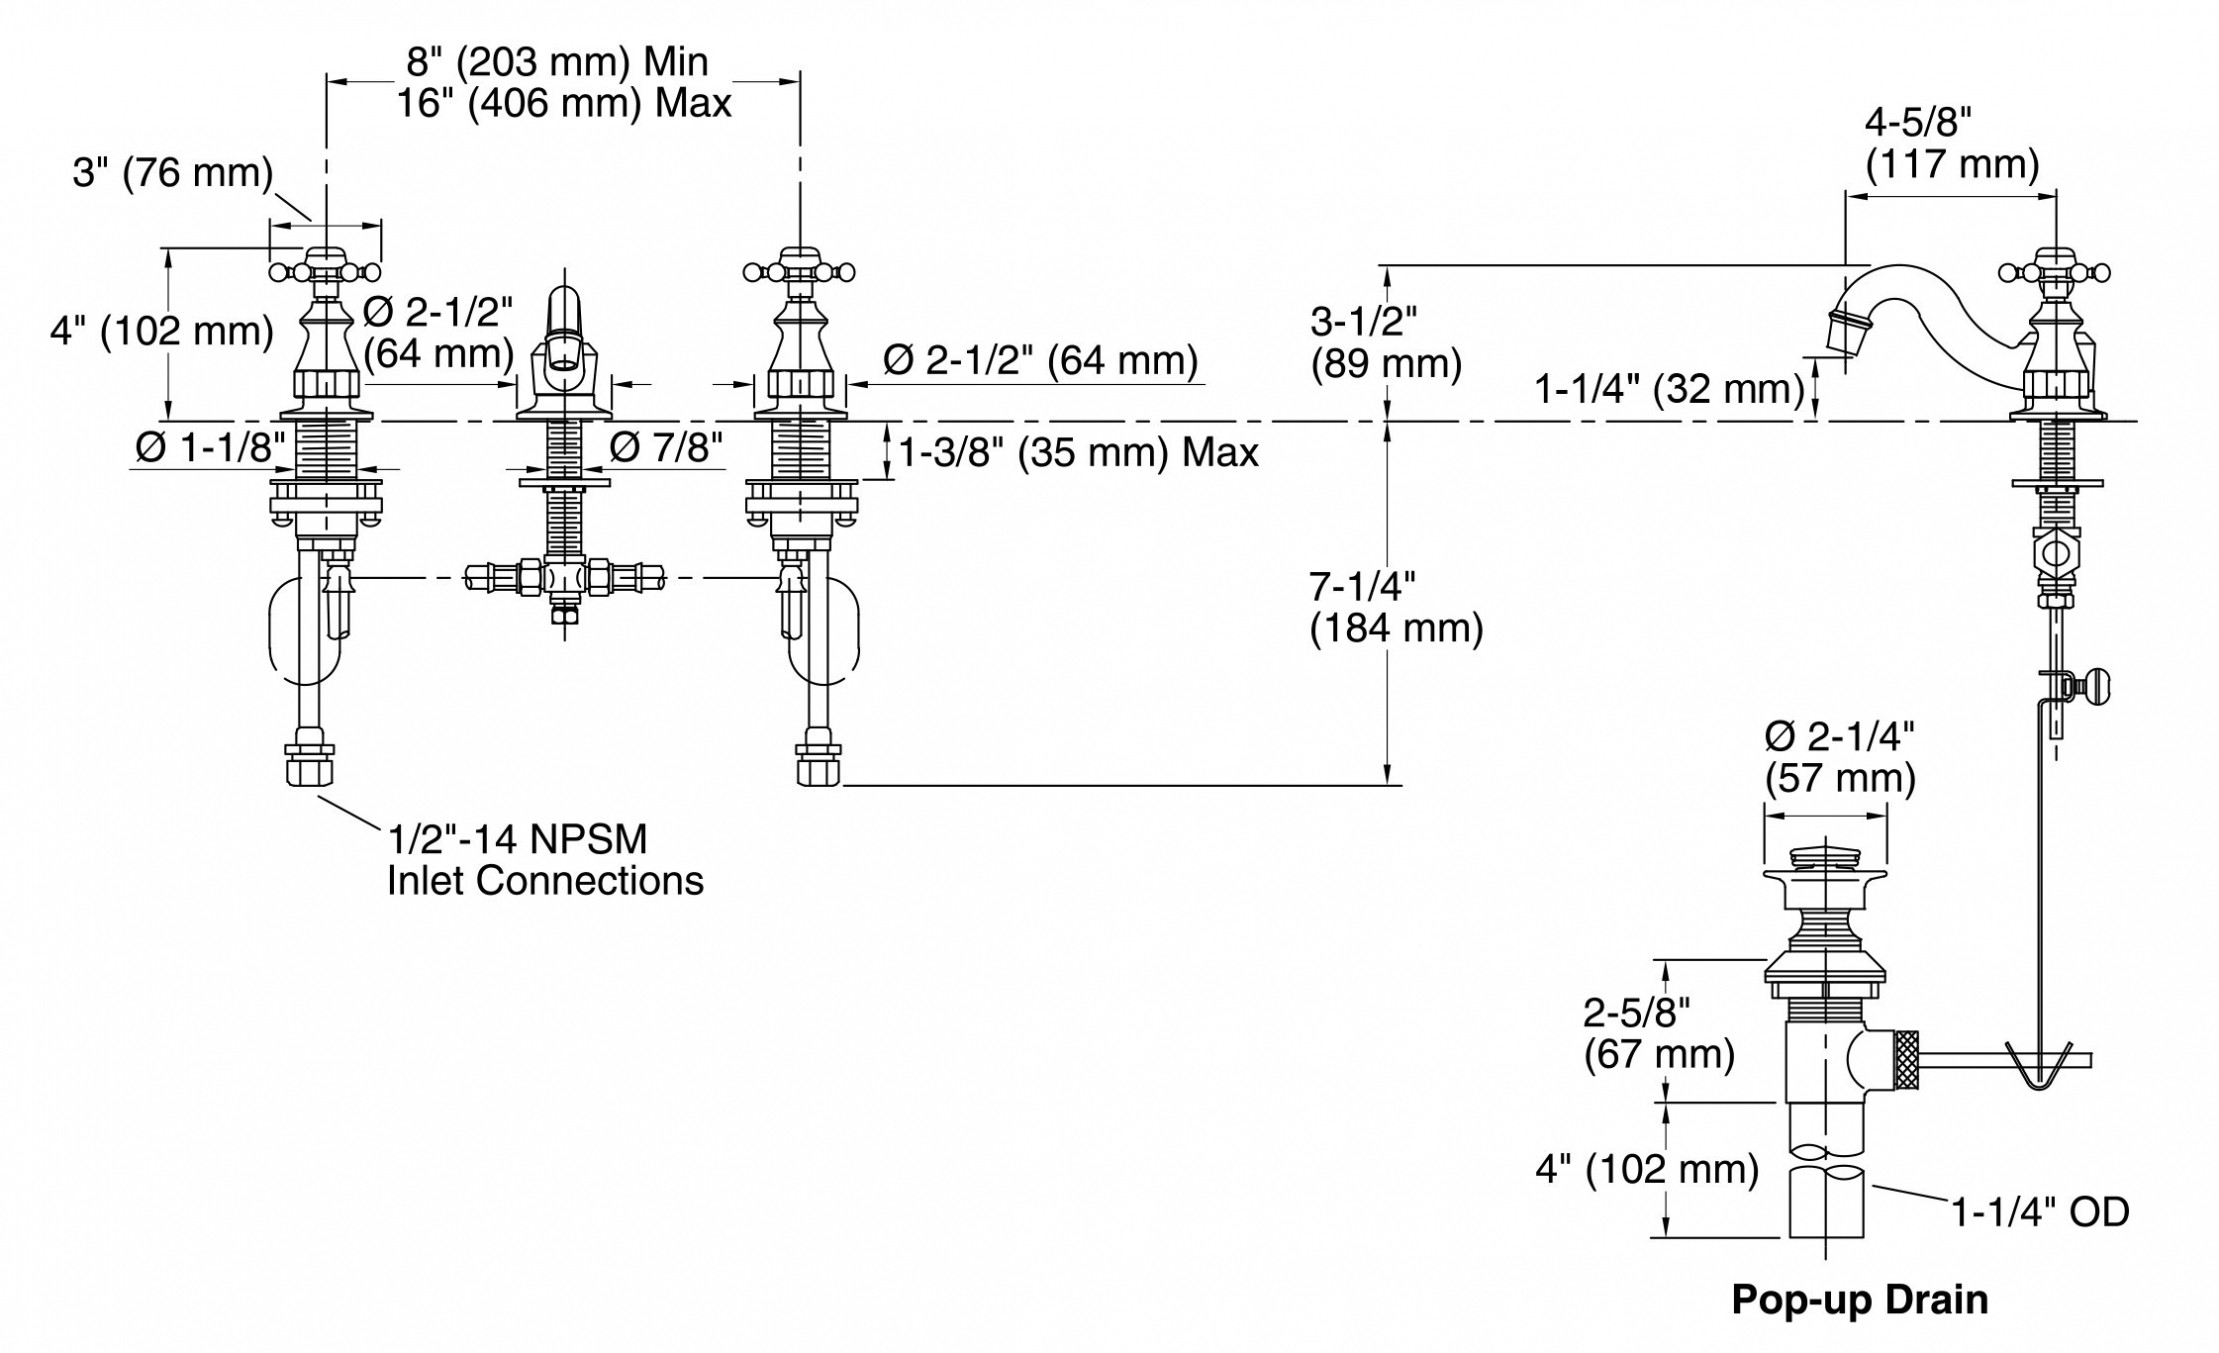 Mustang Engine Diagram Kohler Mand Wiring Diagram — Daytonva150 Of Mustang Engine Diagram